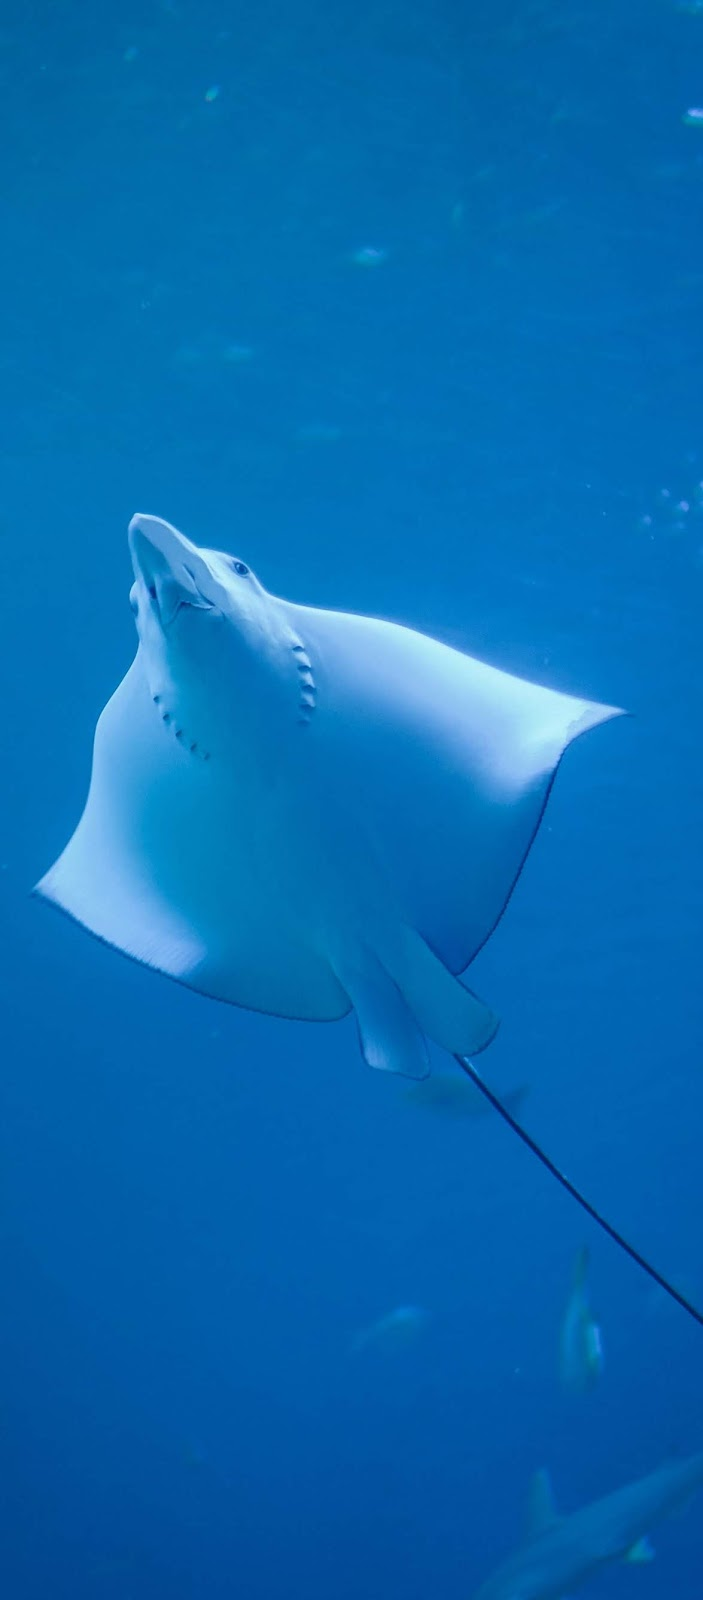 Picture of a manta ray.